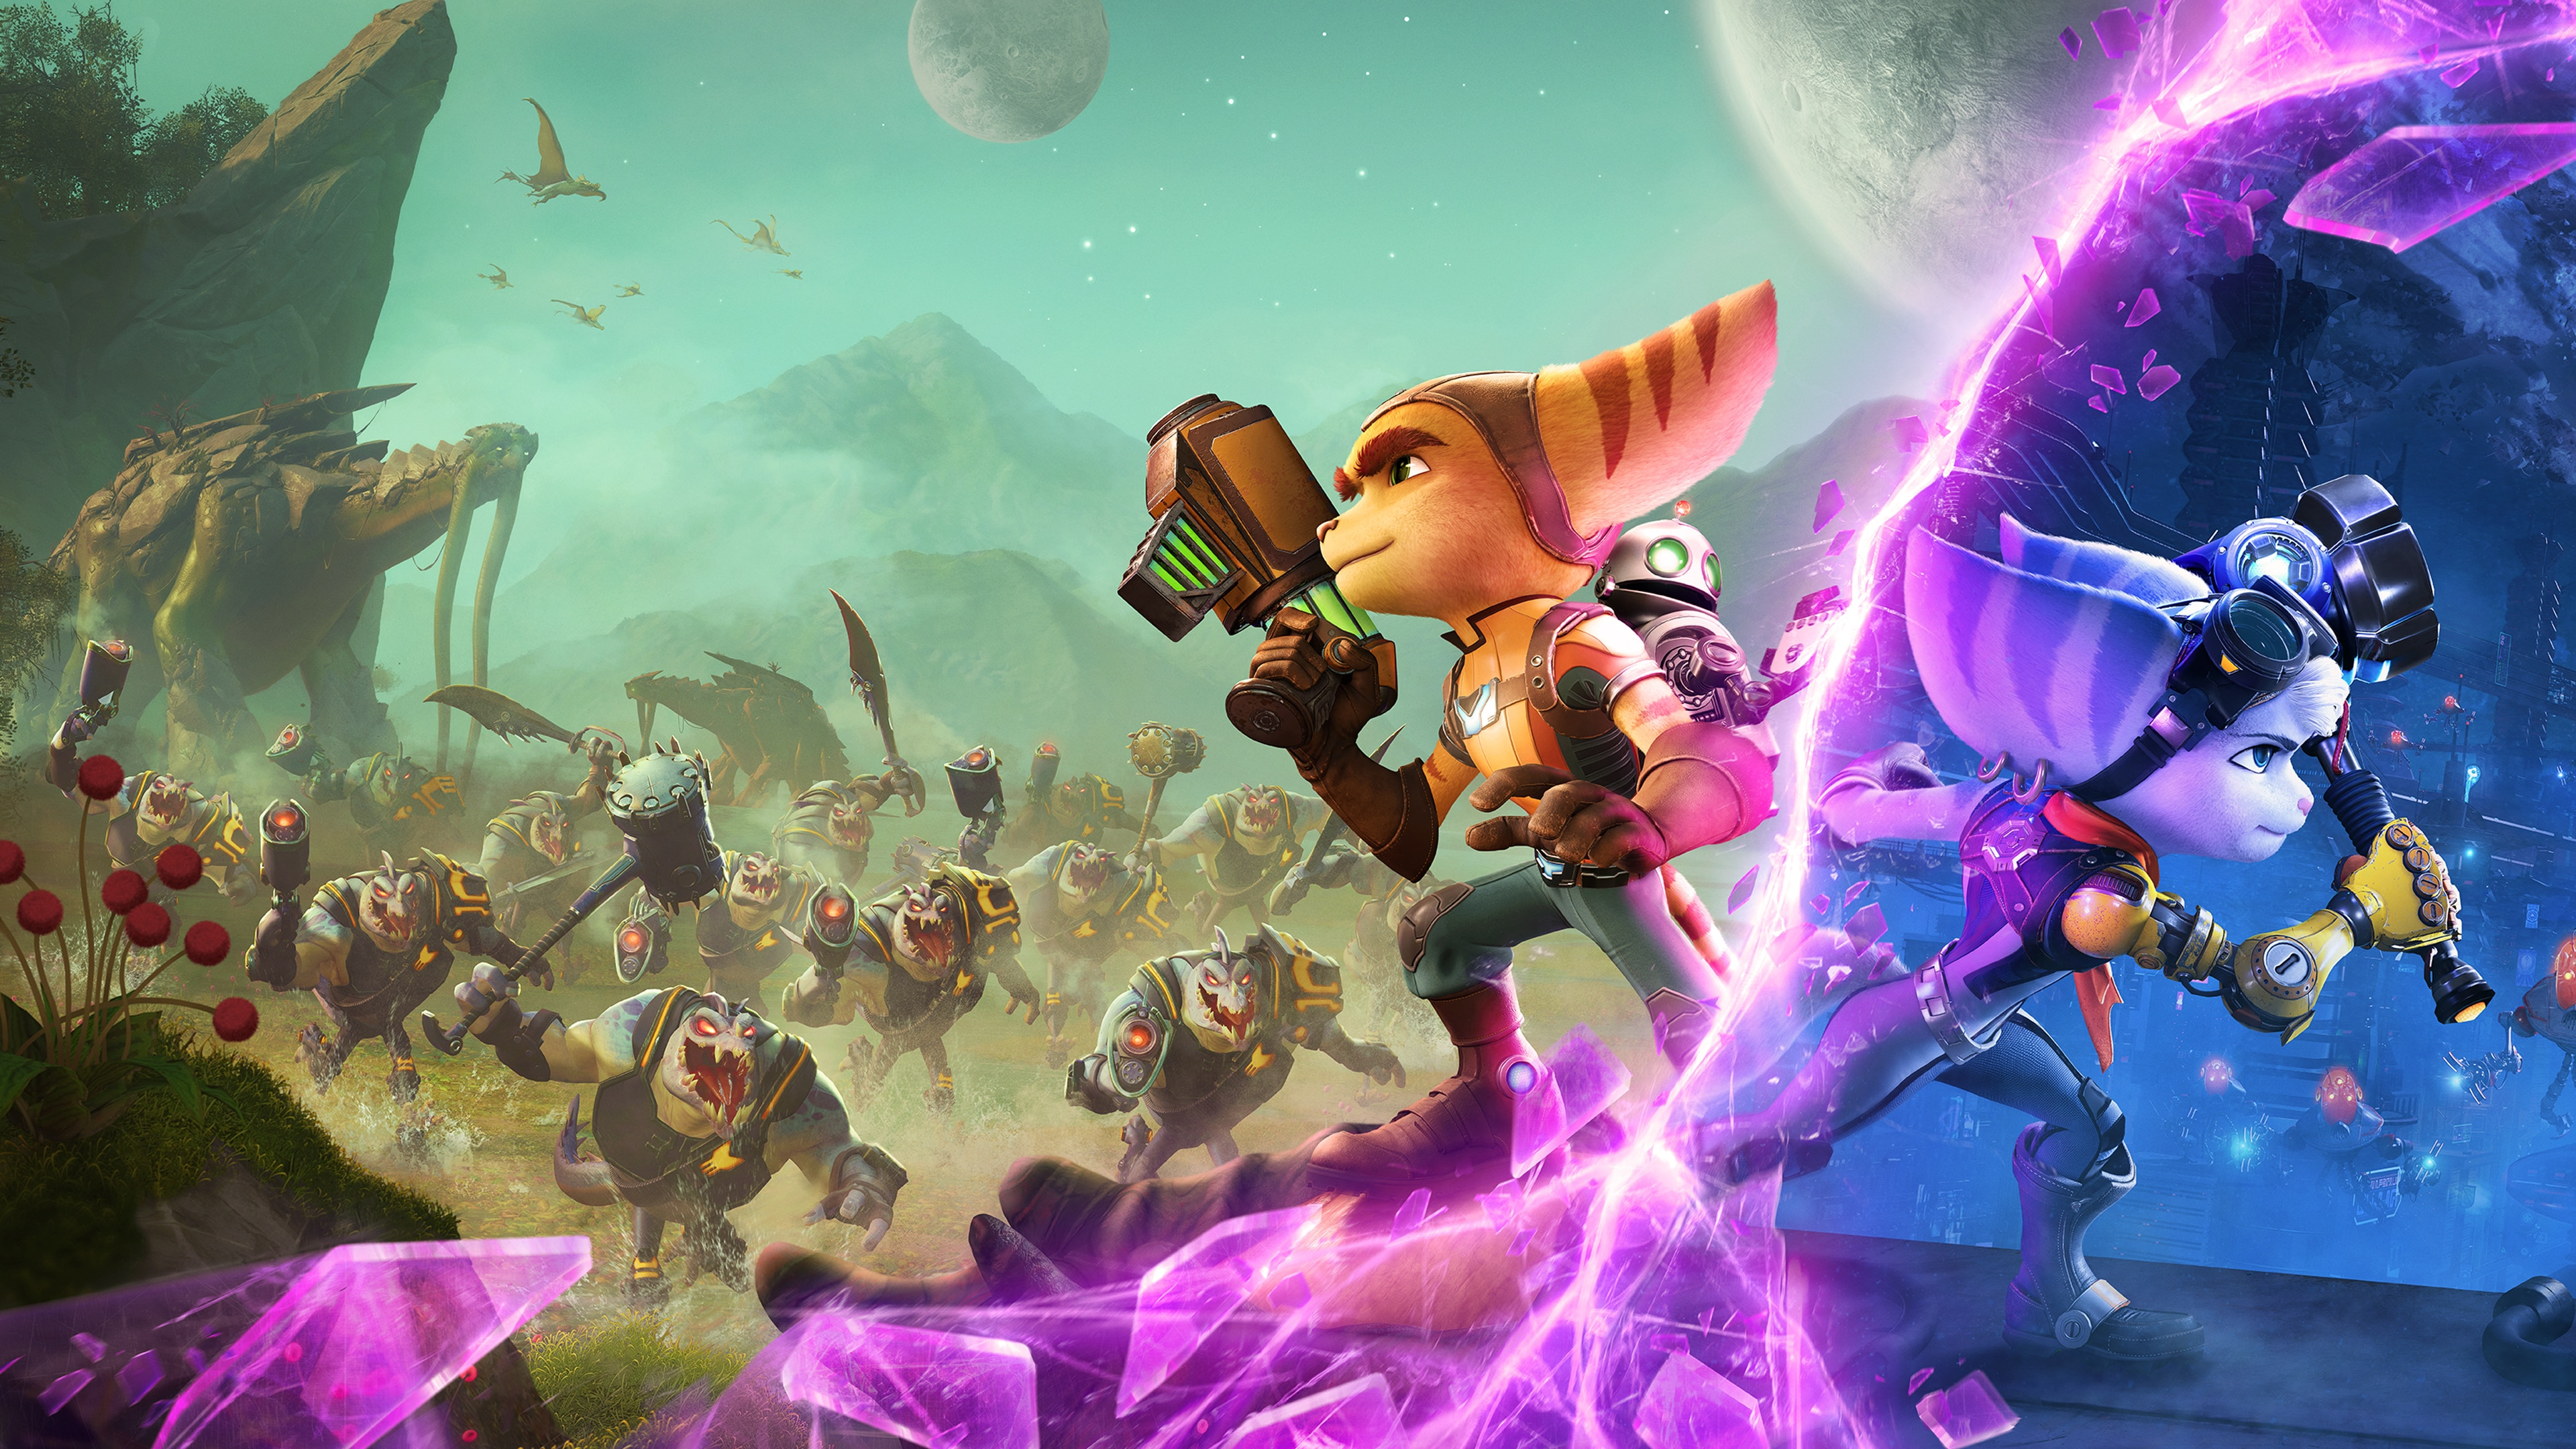 Ratchet & Clank: Rift Apart Digital Deluxe Edition